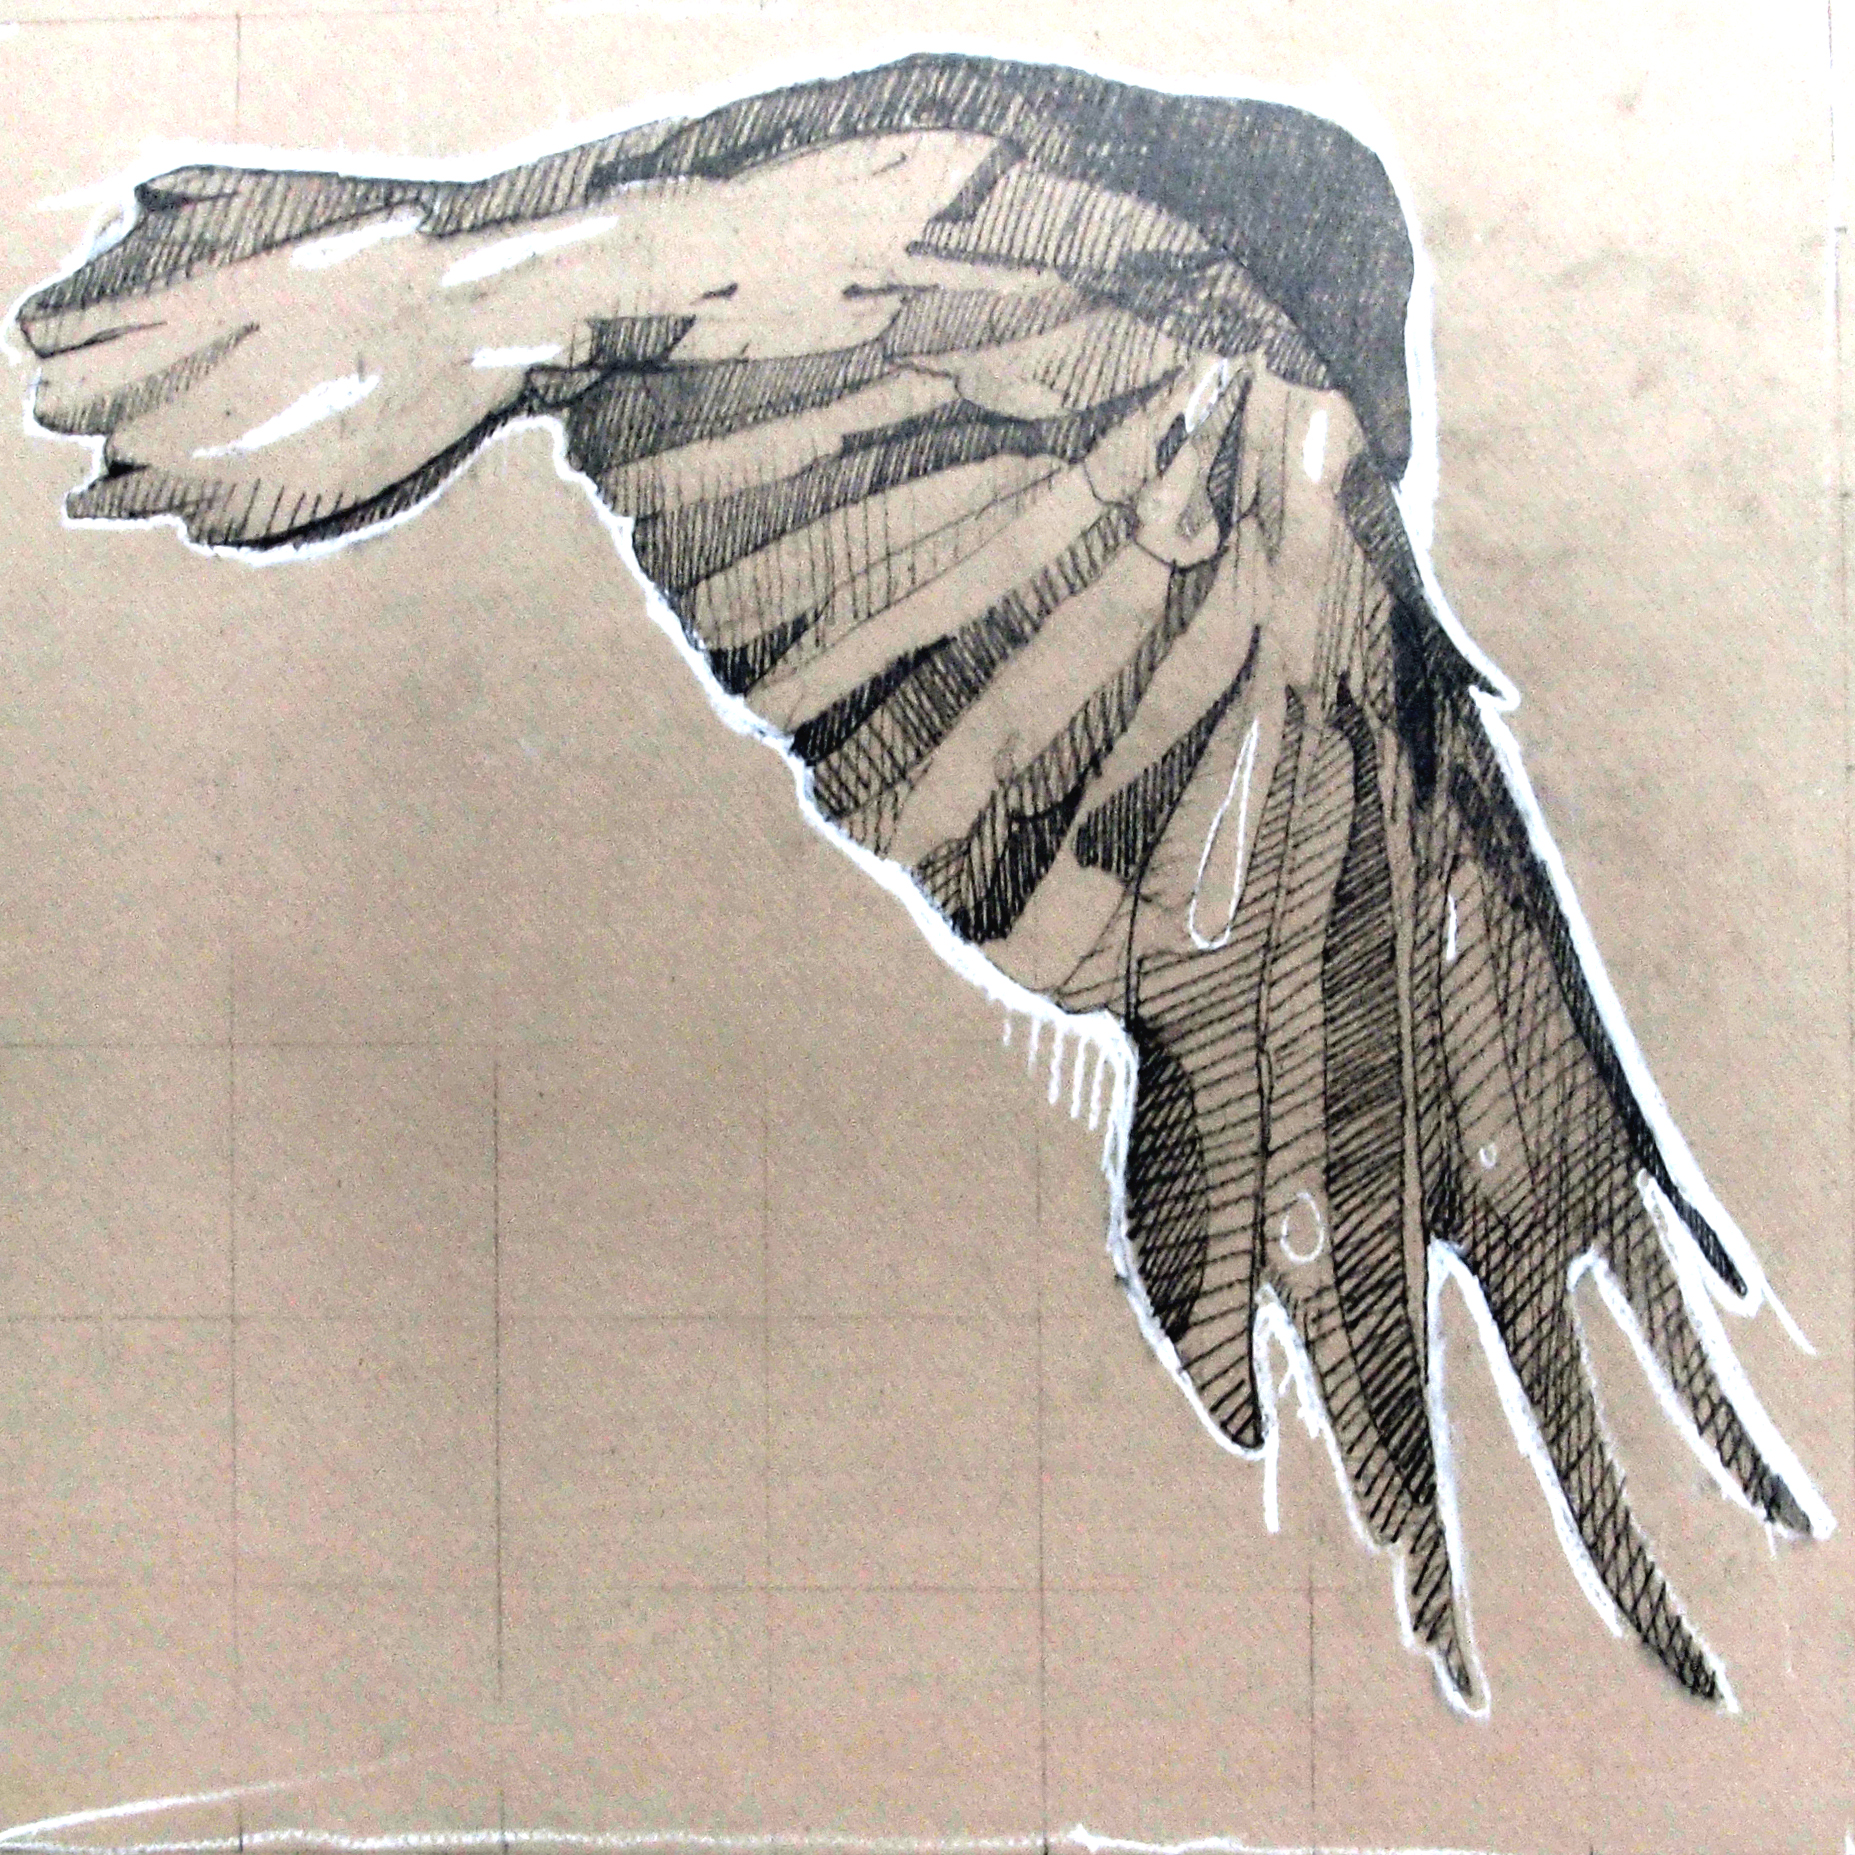 Crow Study, 14 x 14, graphit and chalk on board